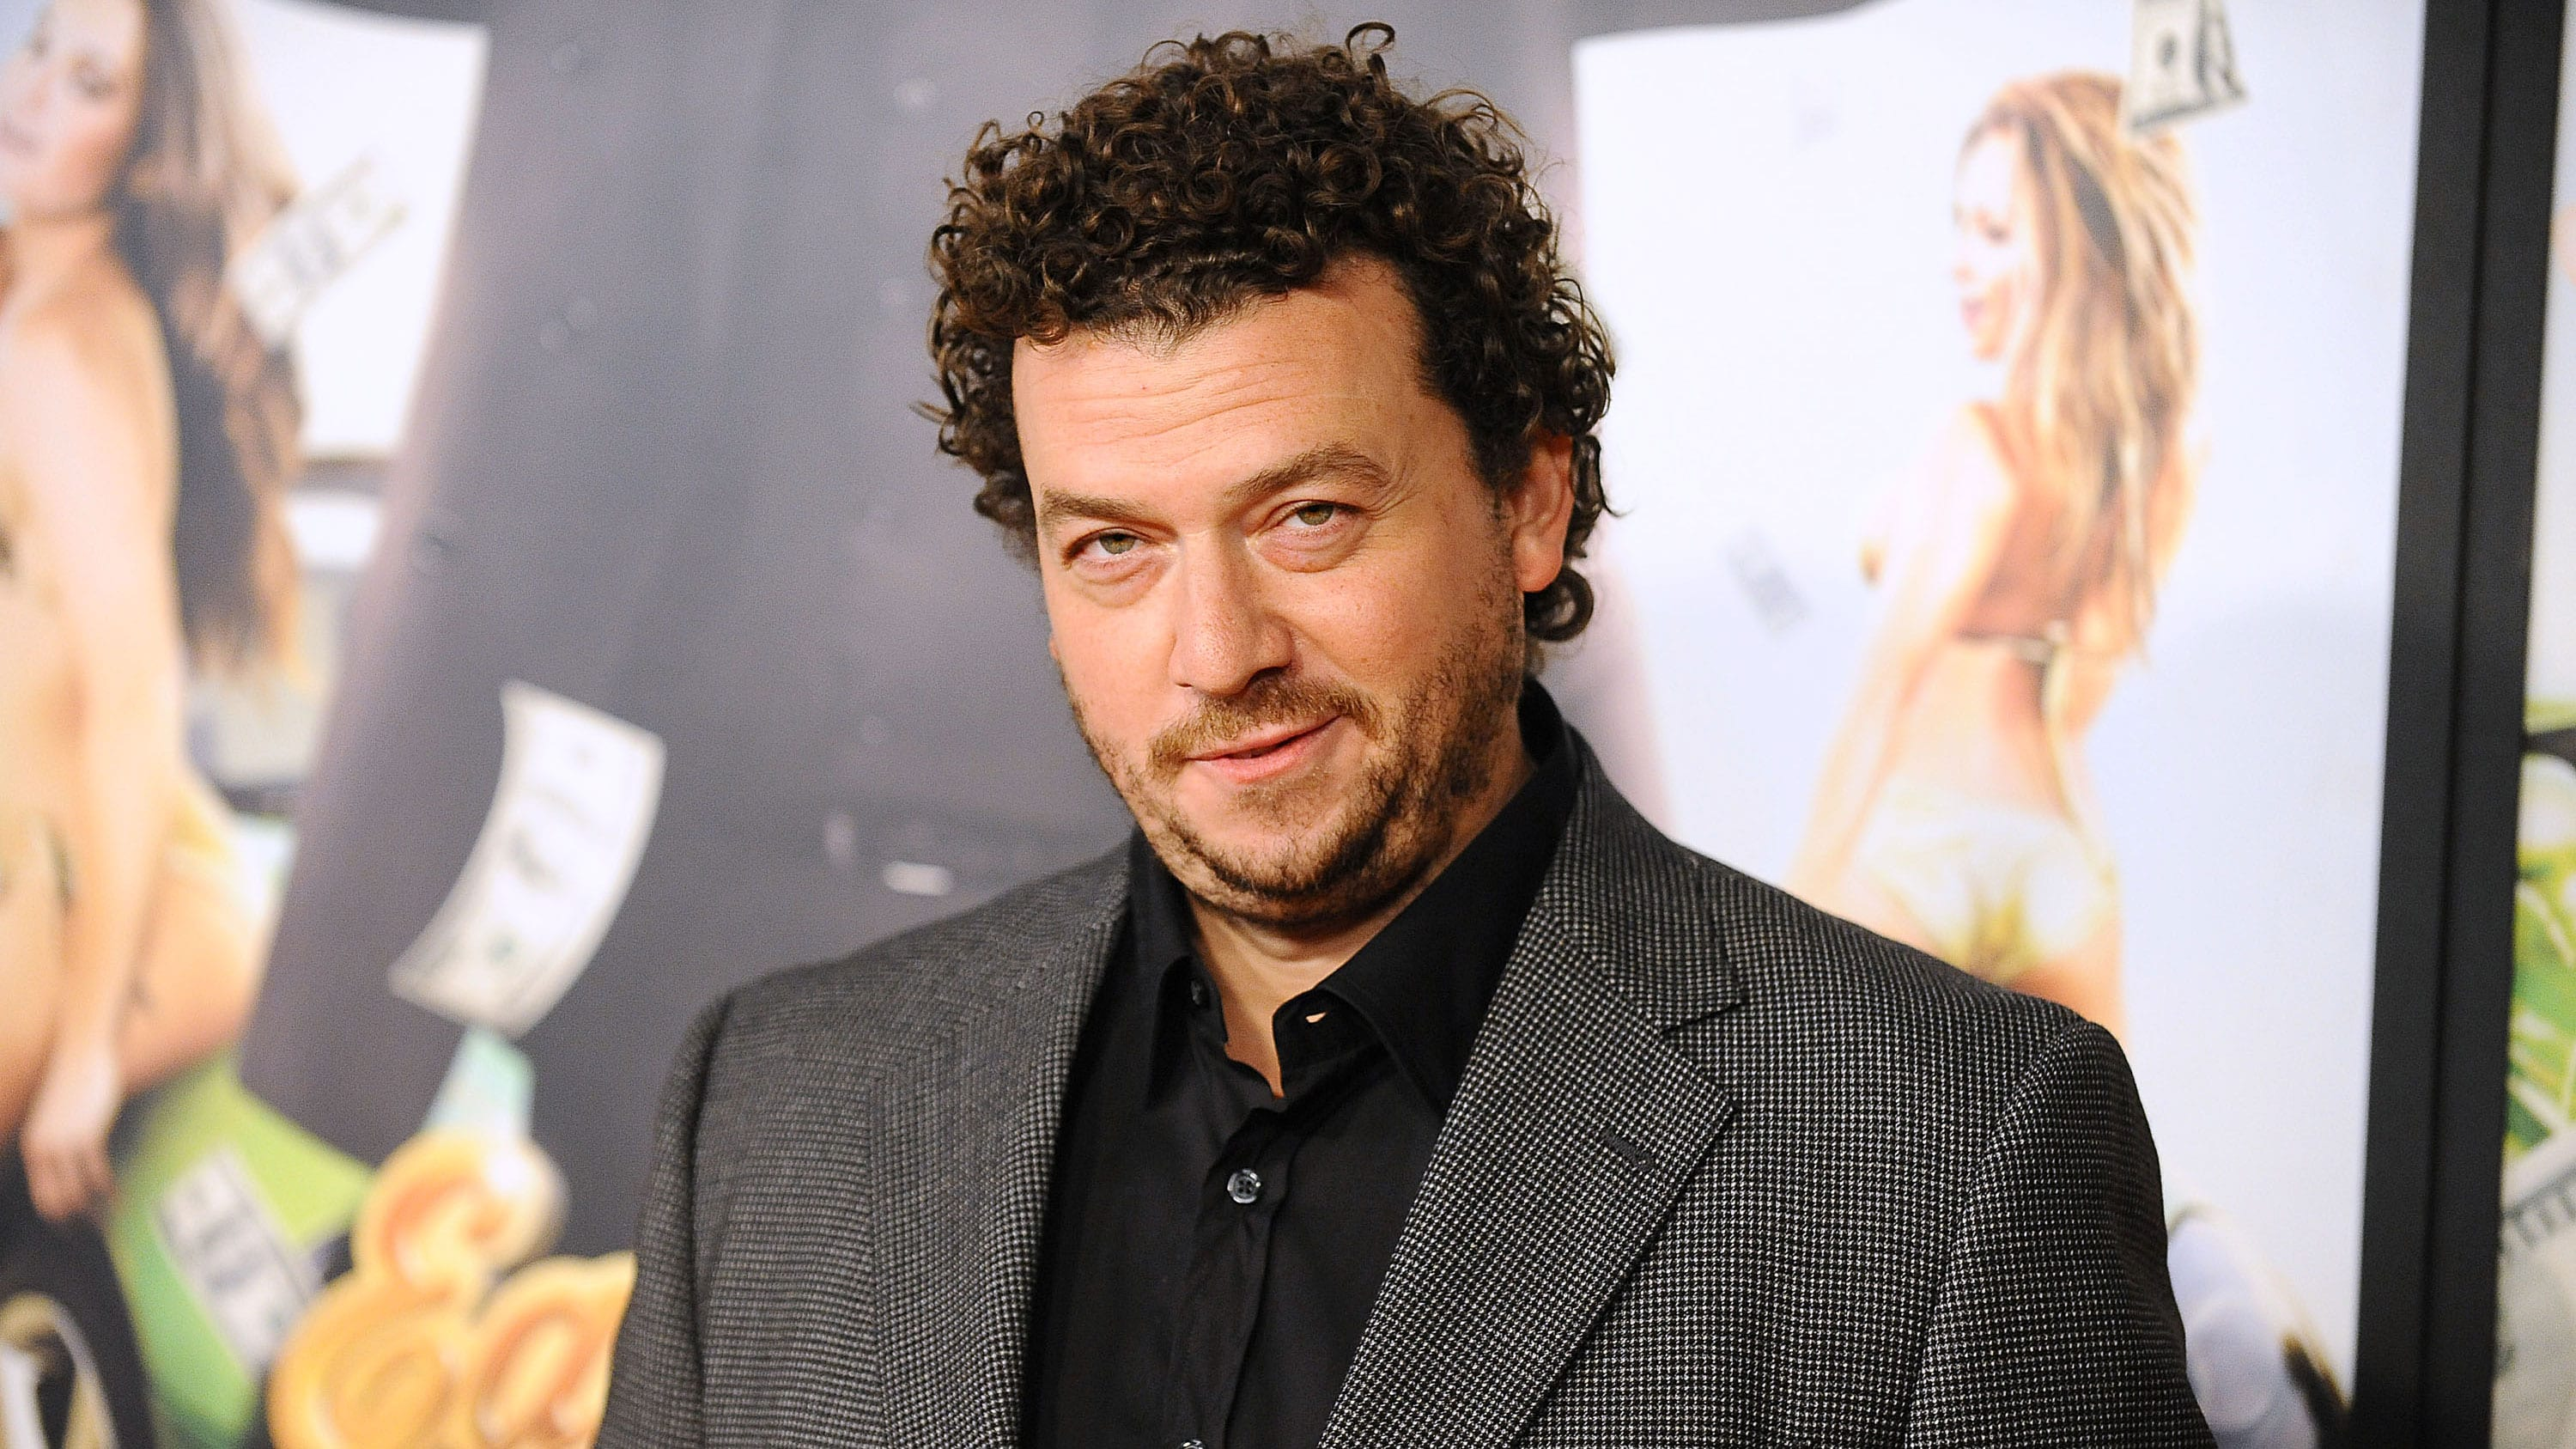 Danny Mcbride widescreen wallpapers